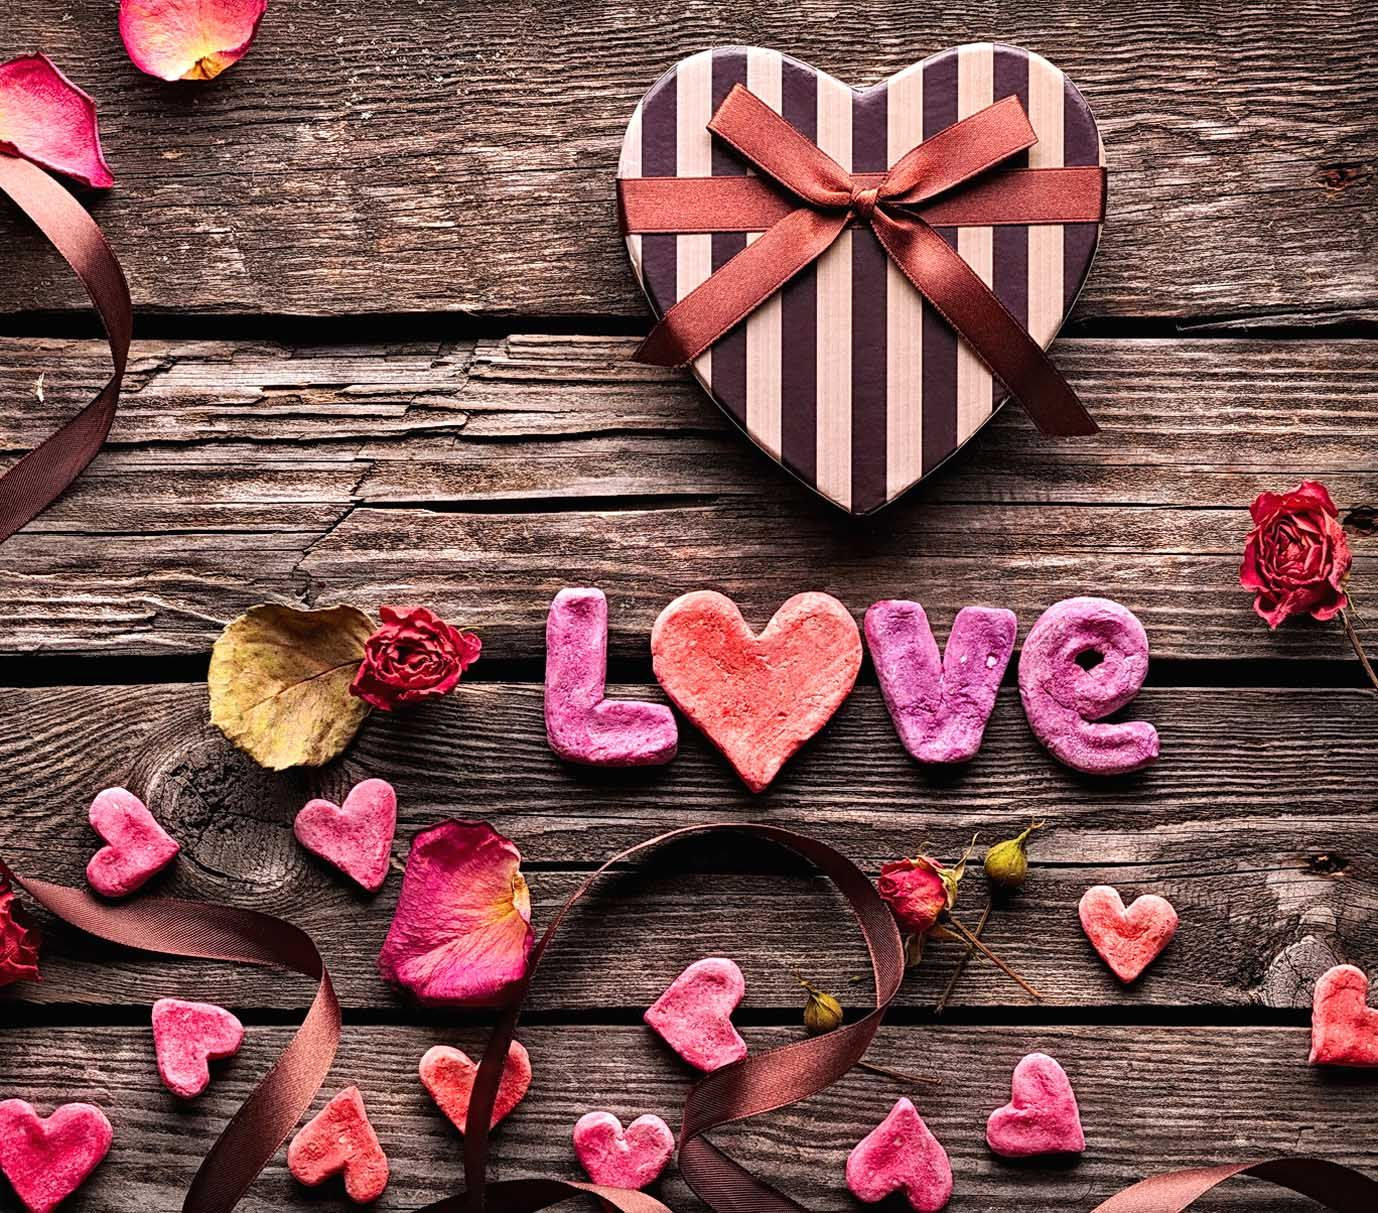 Love new wallpapers mobile hd download 2020